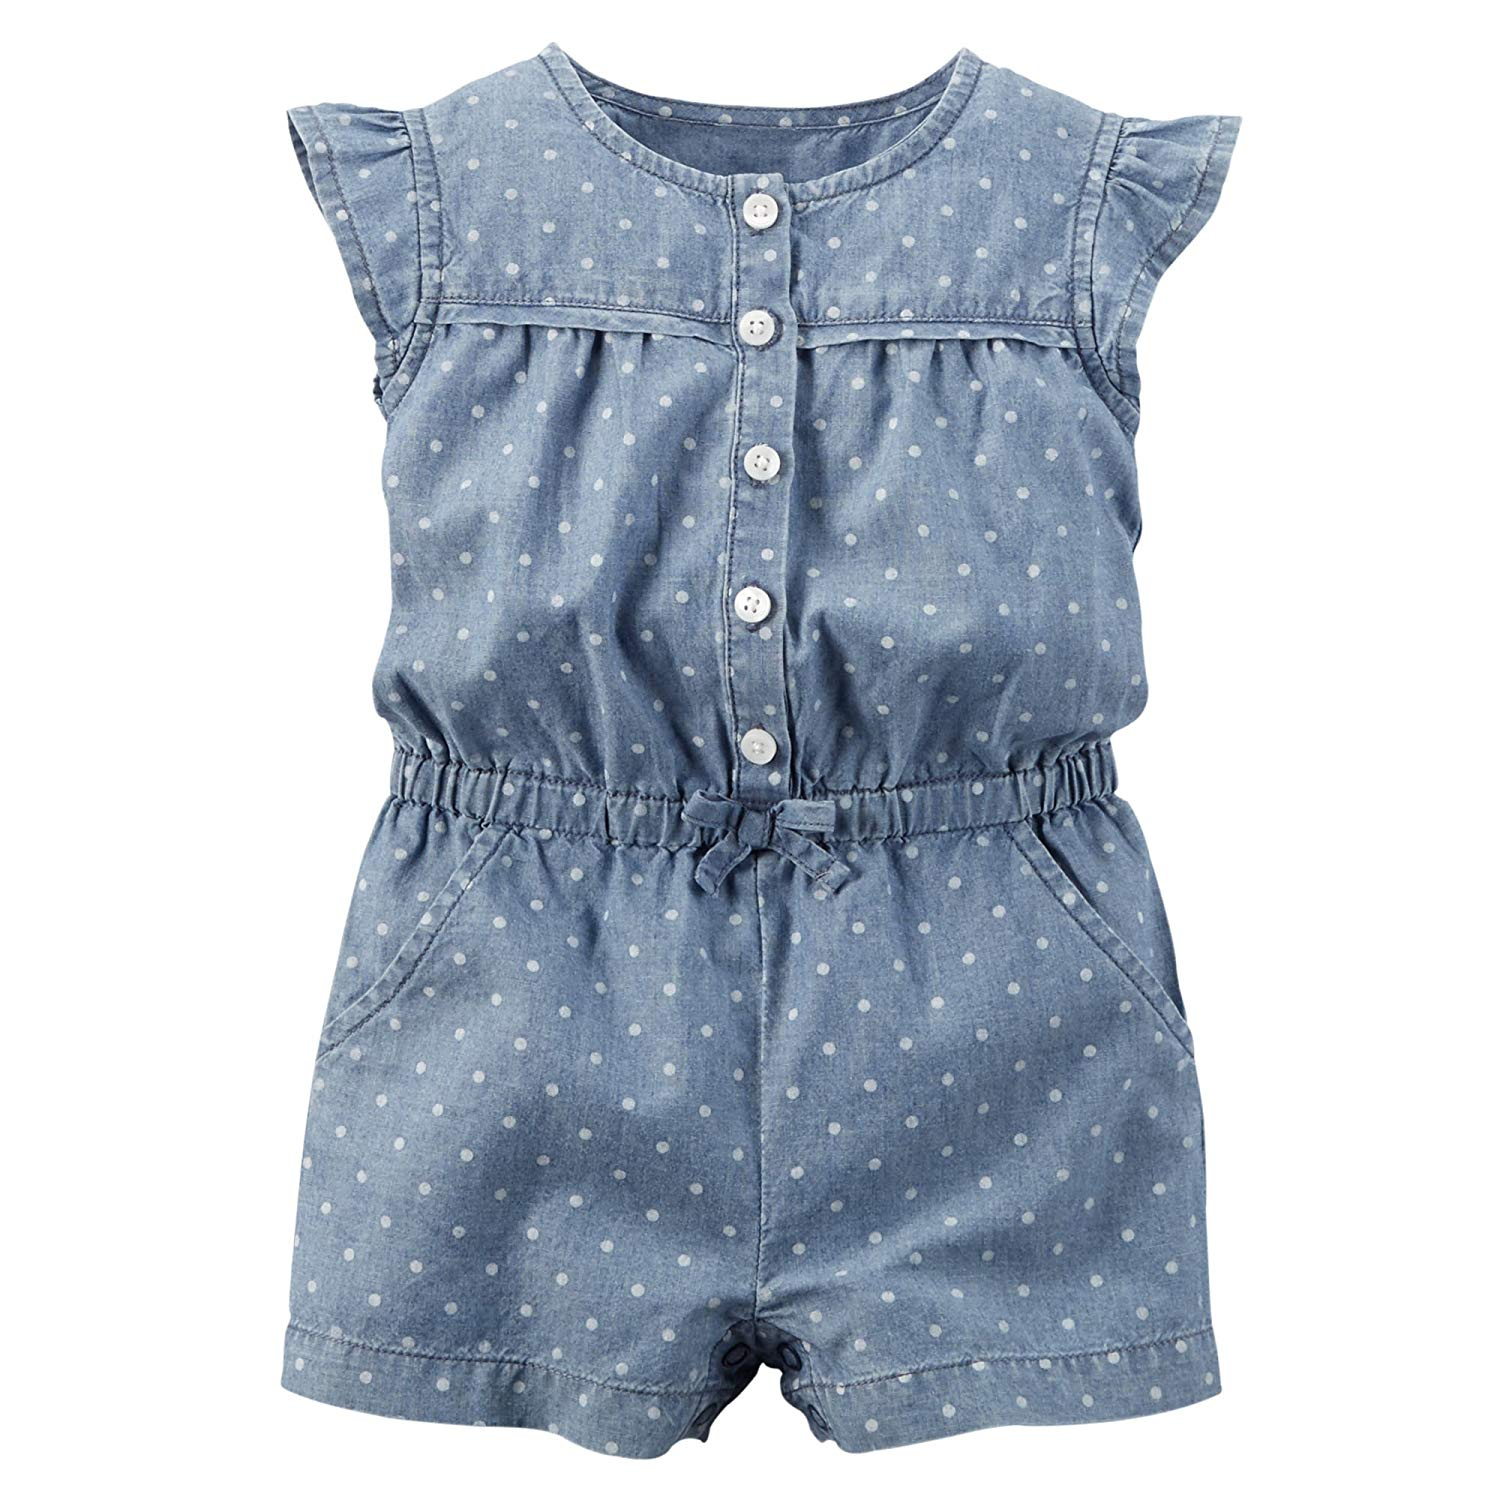 30acb1484929 Girl  Carter s Flutter Sleeve One-Piece Chambray Romper Blue 18M ...